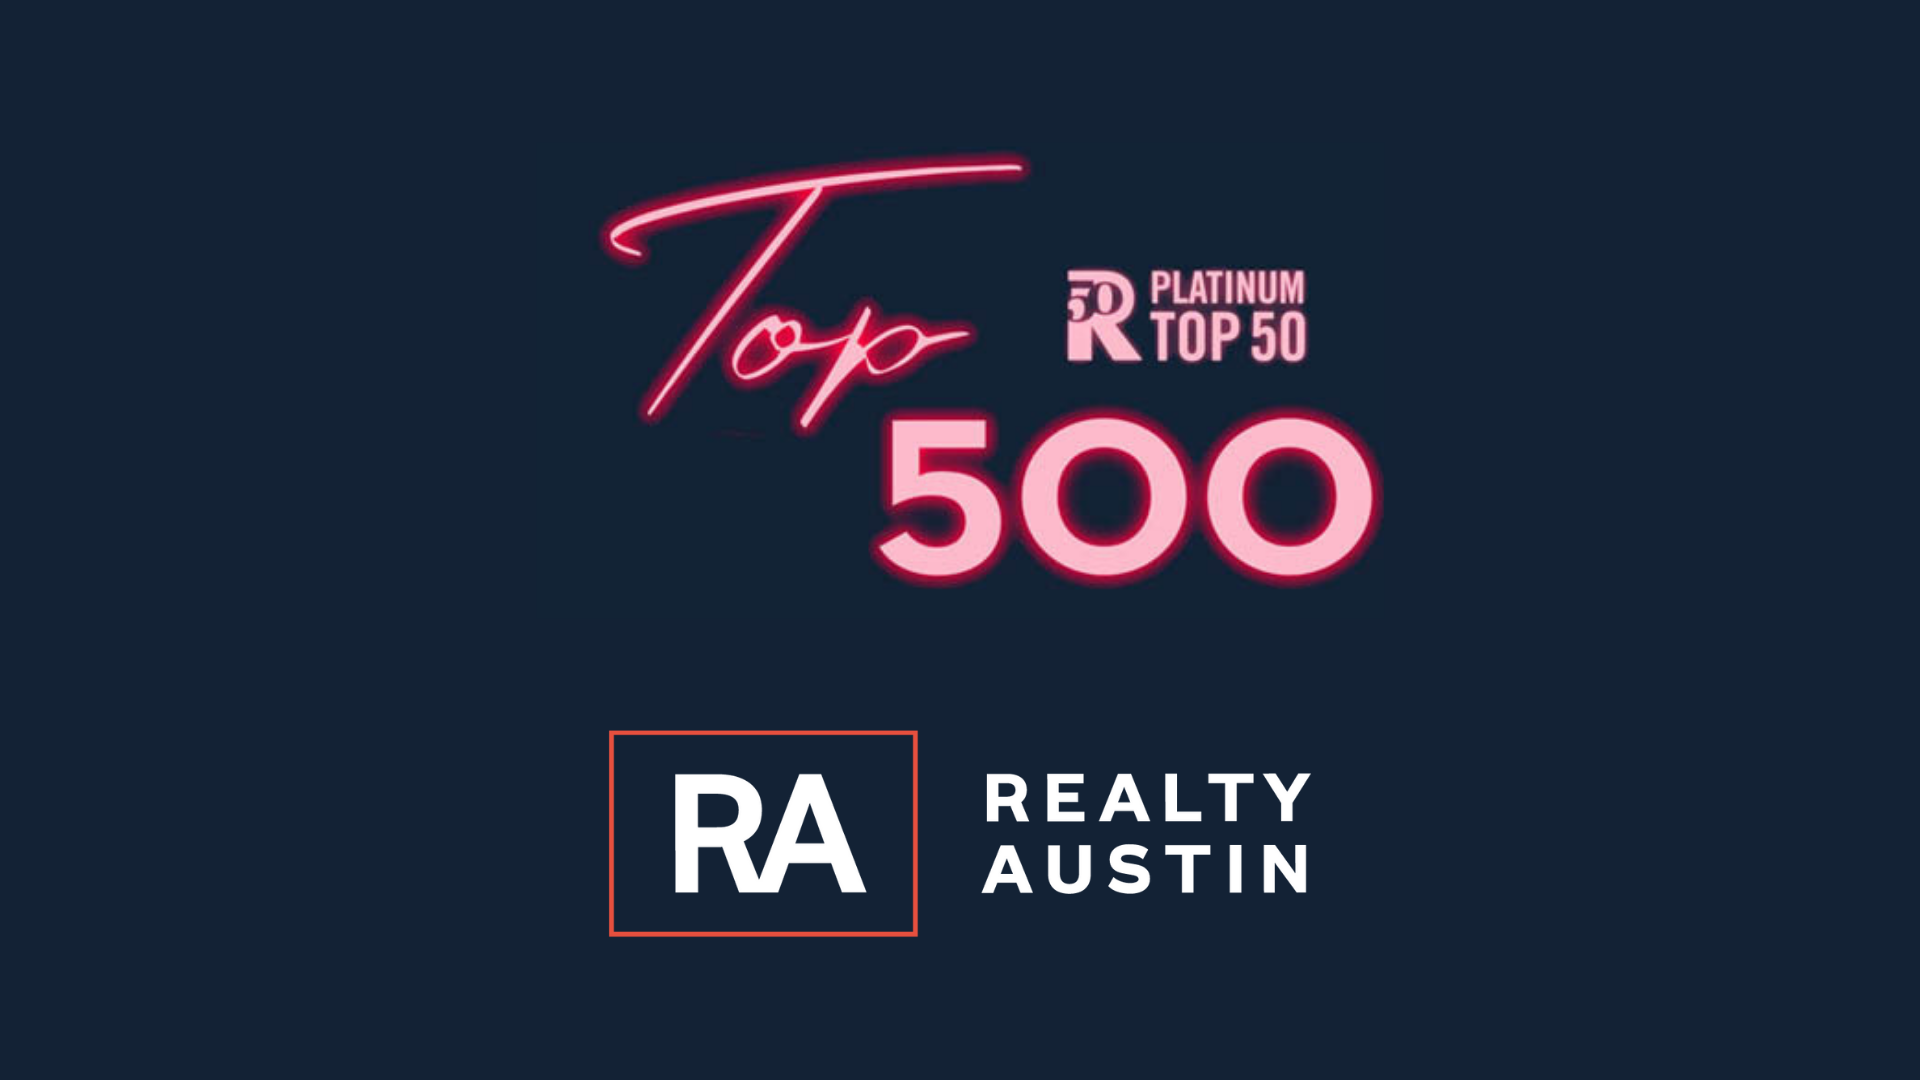 Realty Austin Celebrates over 220 agents named to Platinum Top 500 List